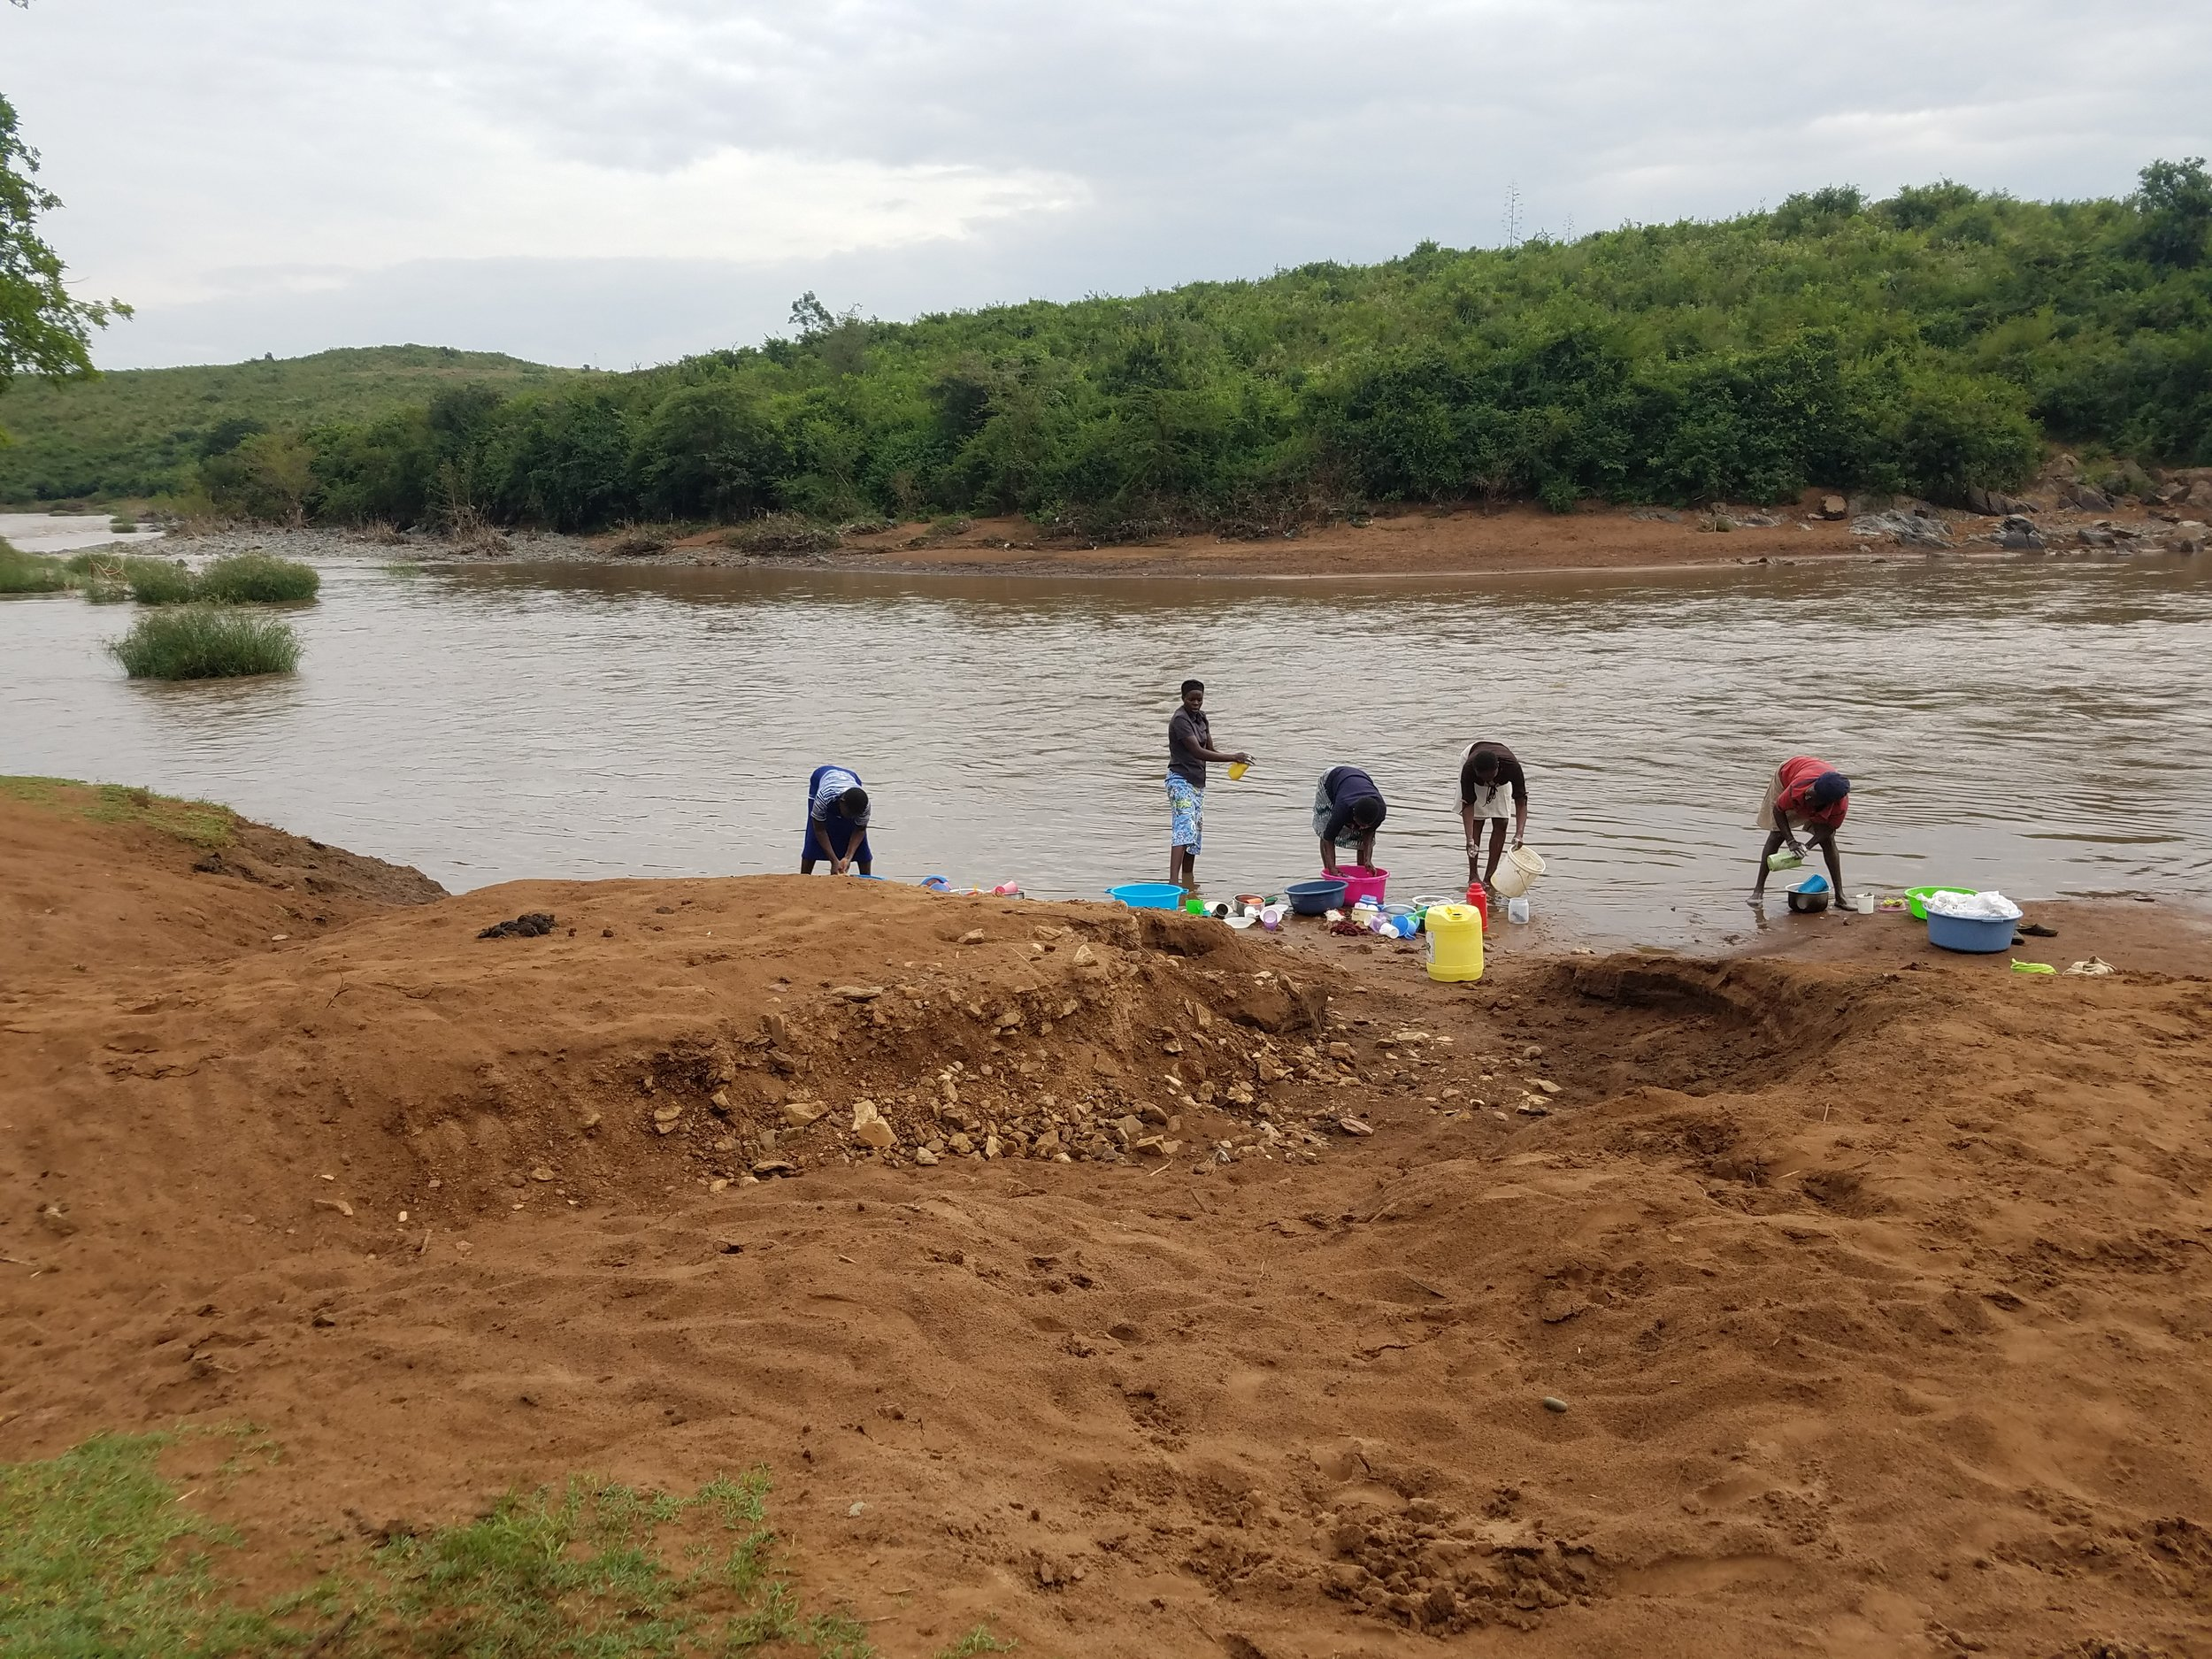 The women and children walk 3-8 hours to reach this river filled with potentially deadly diseases and crocodiles.